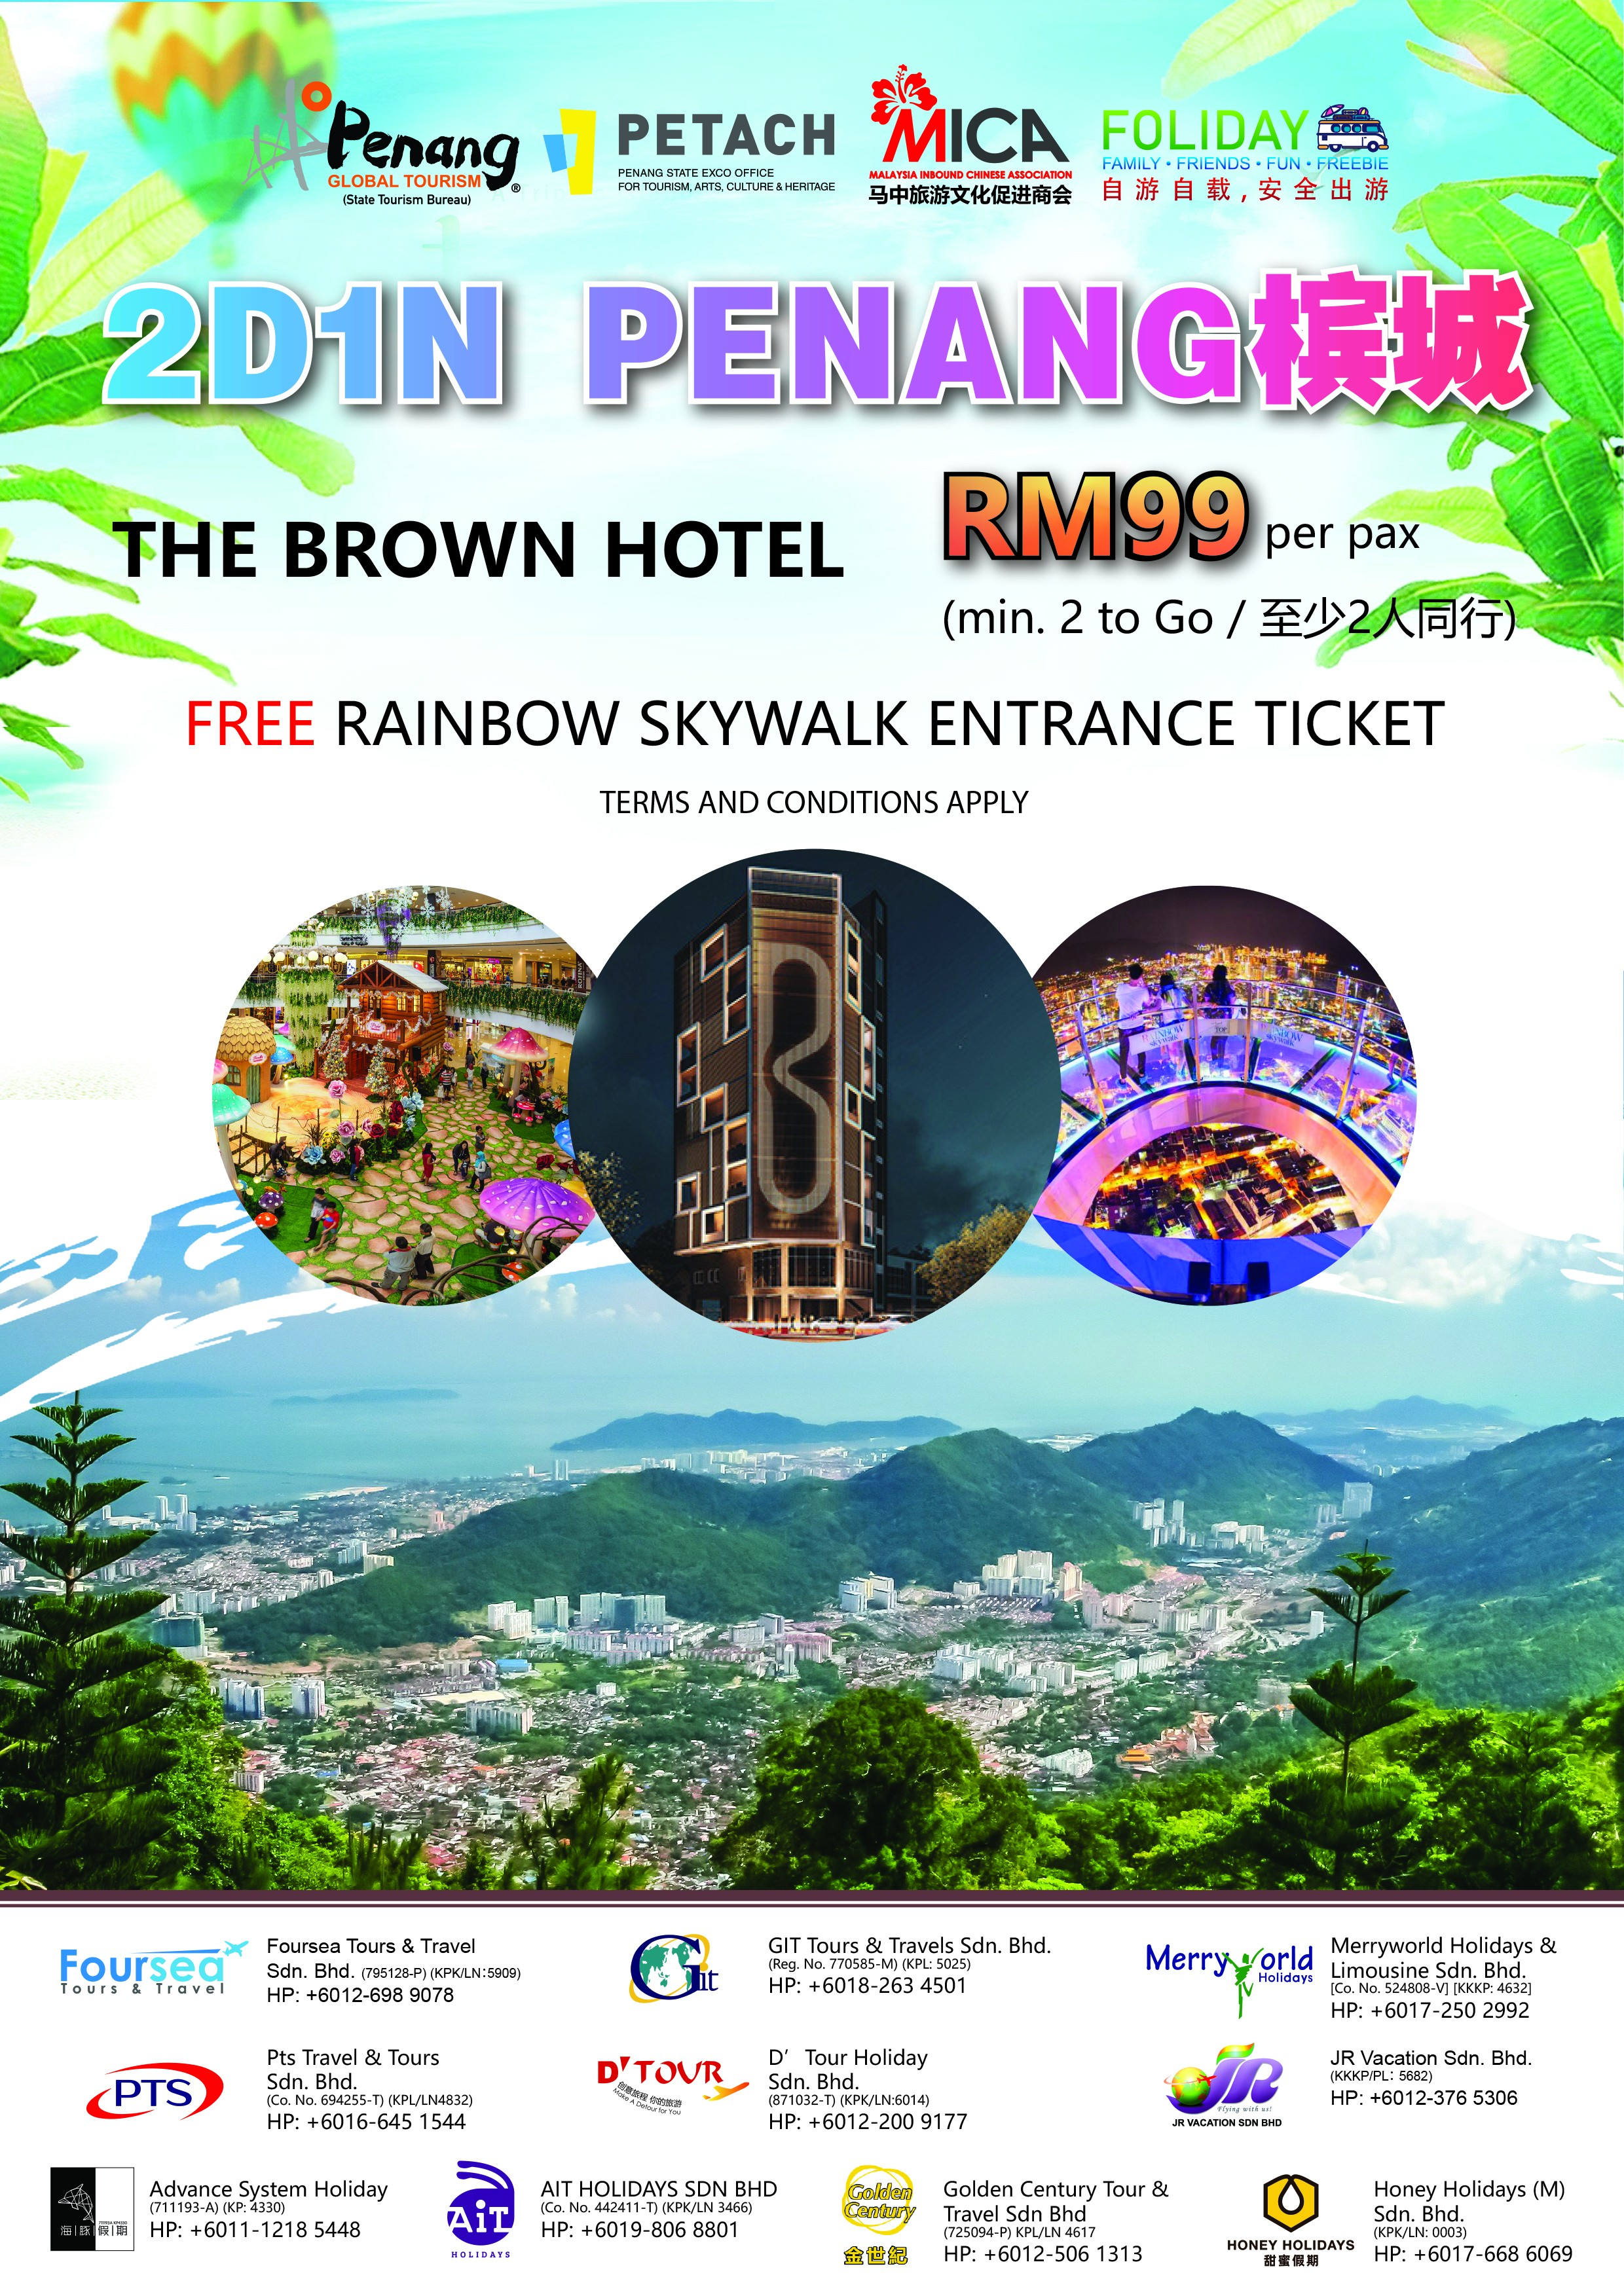 2D1N Penang - The Brown Hotel